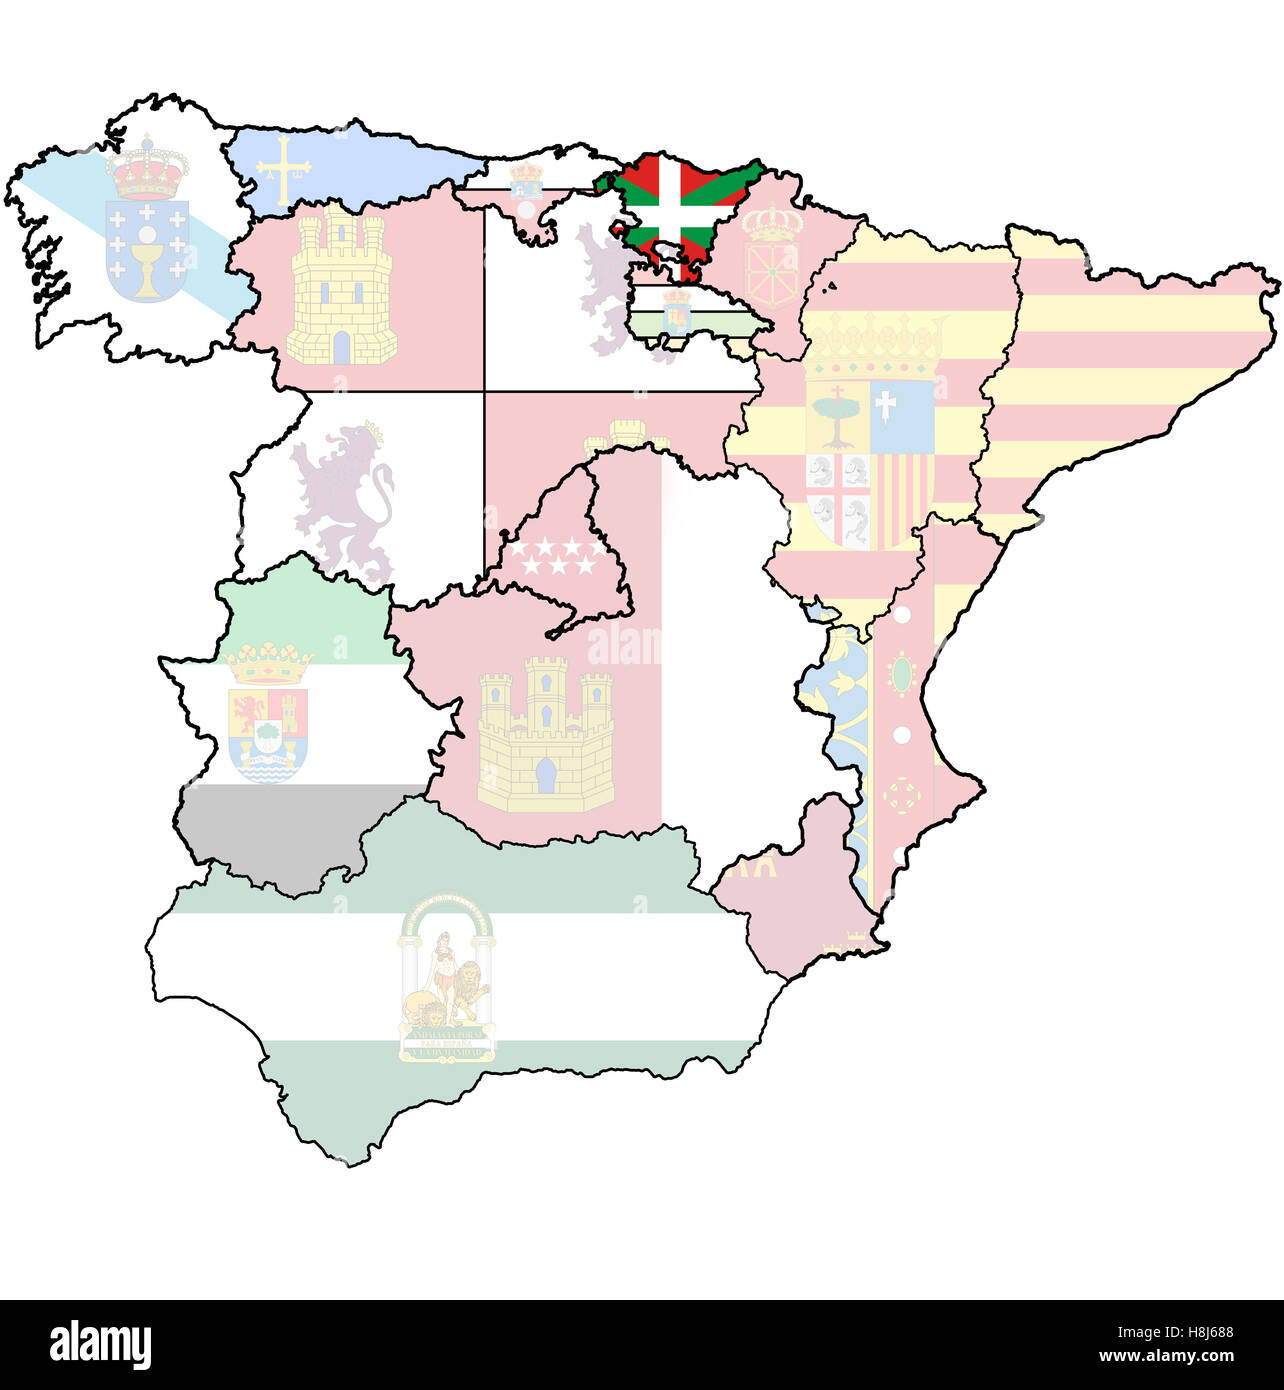 basque country region on administration map of regions of spain with